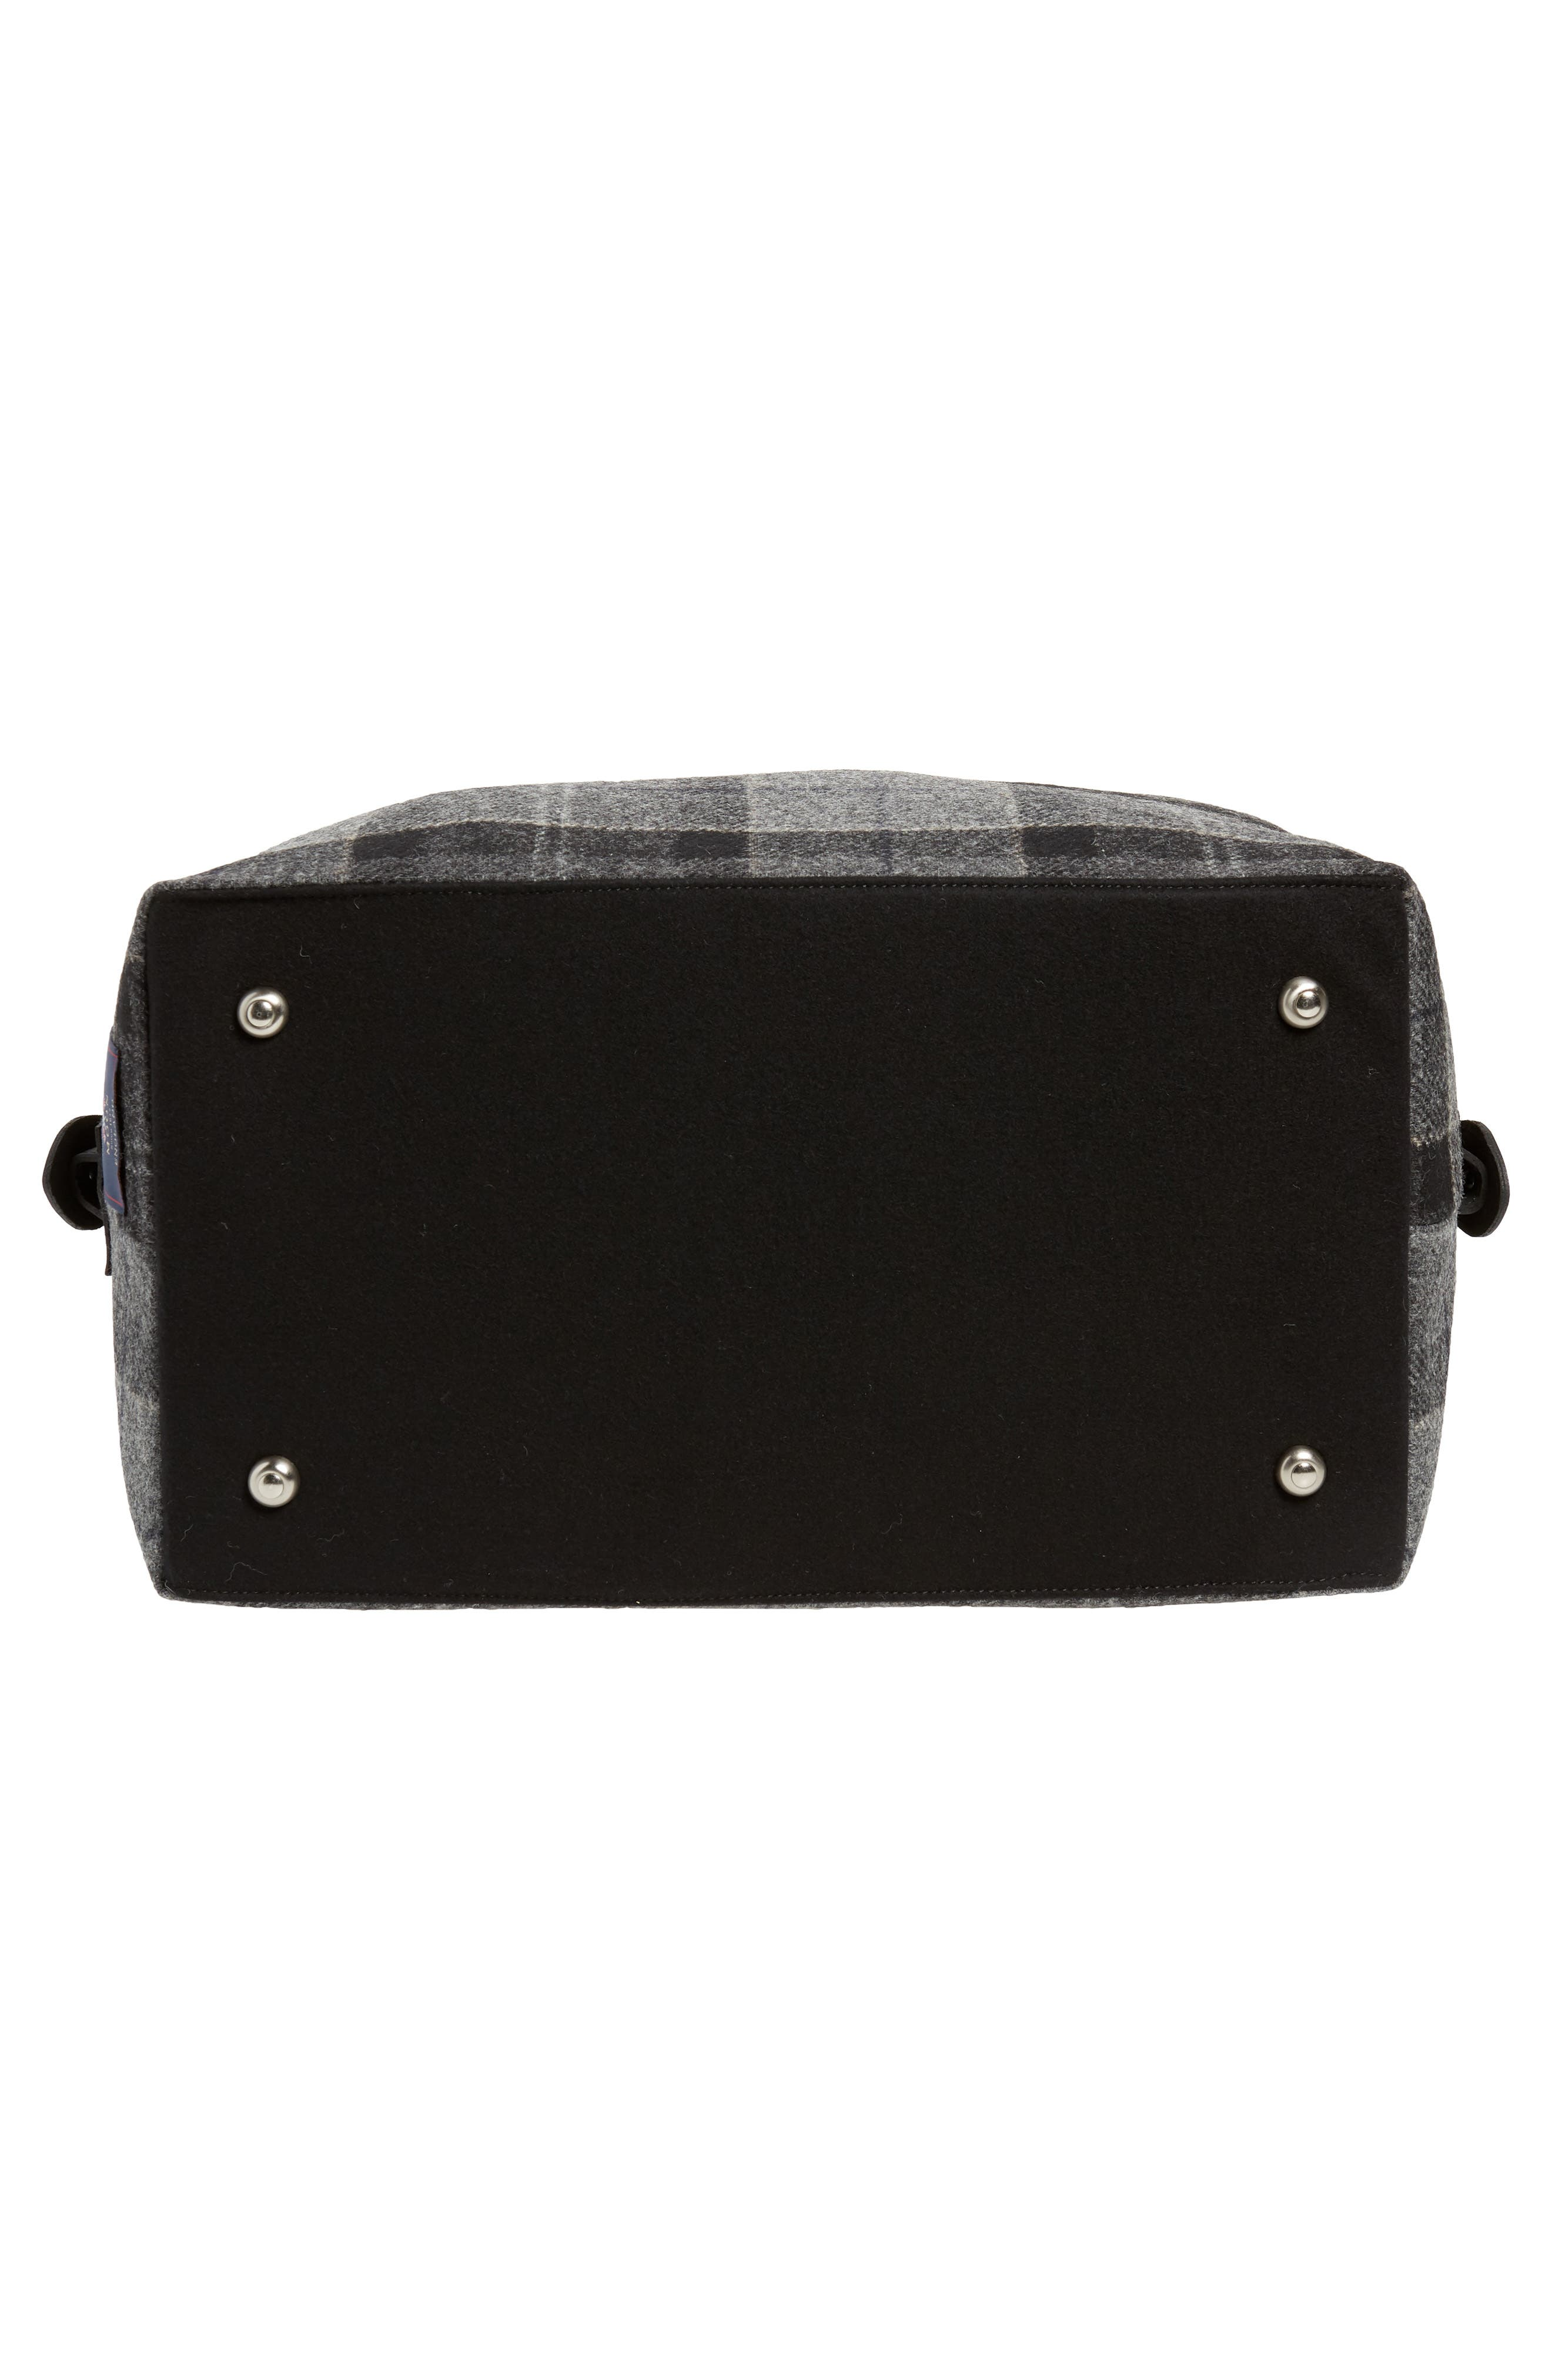 Shadow Duffel Bag,                             Alternate thumbnail 6, color,                             BLACK/ GREY TARTAN